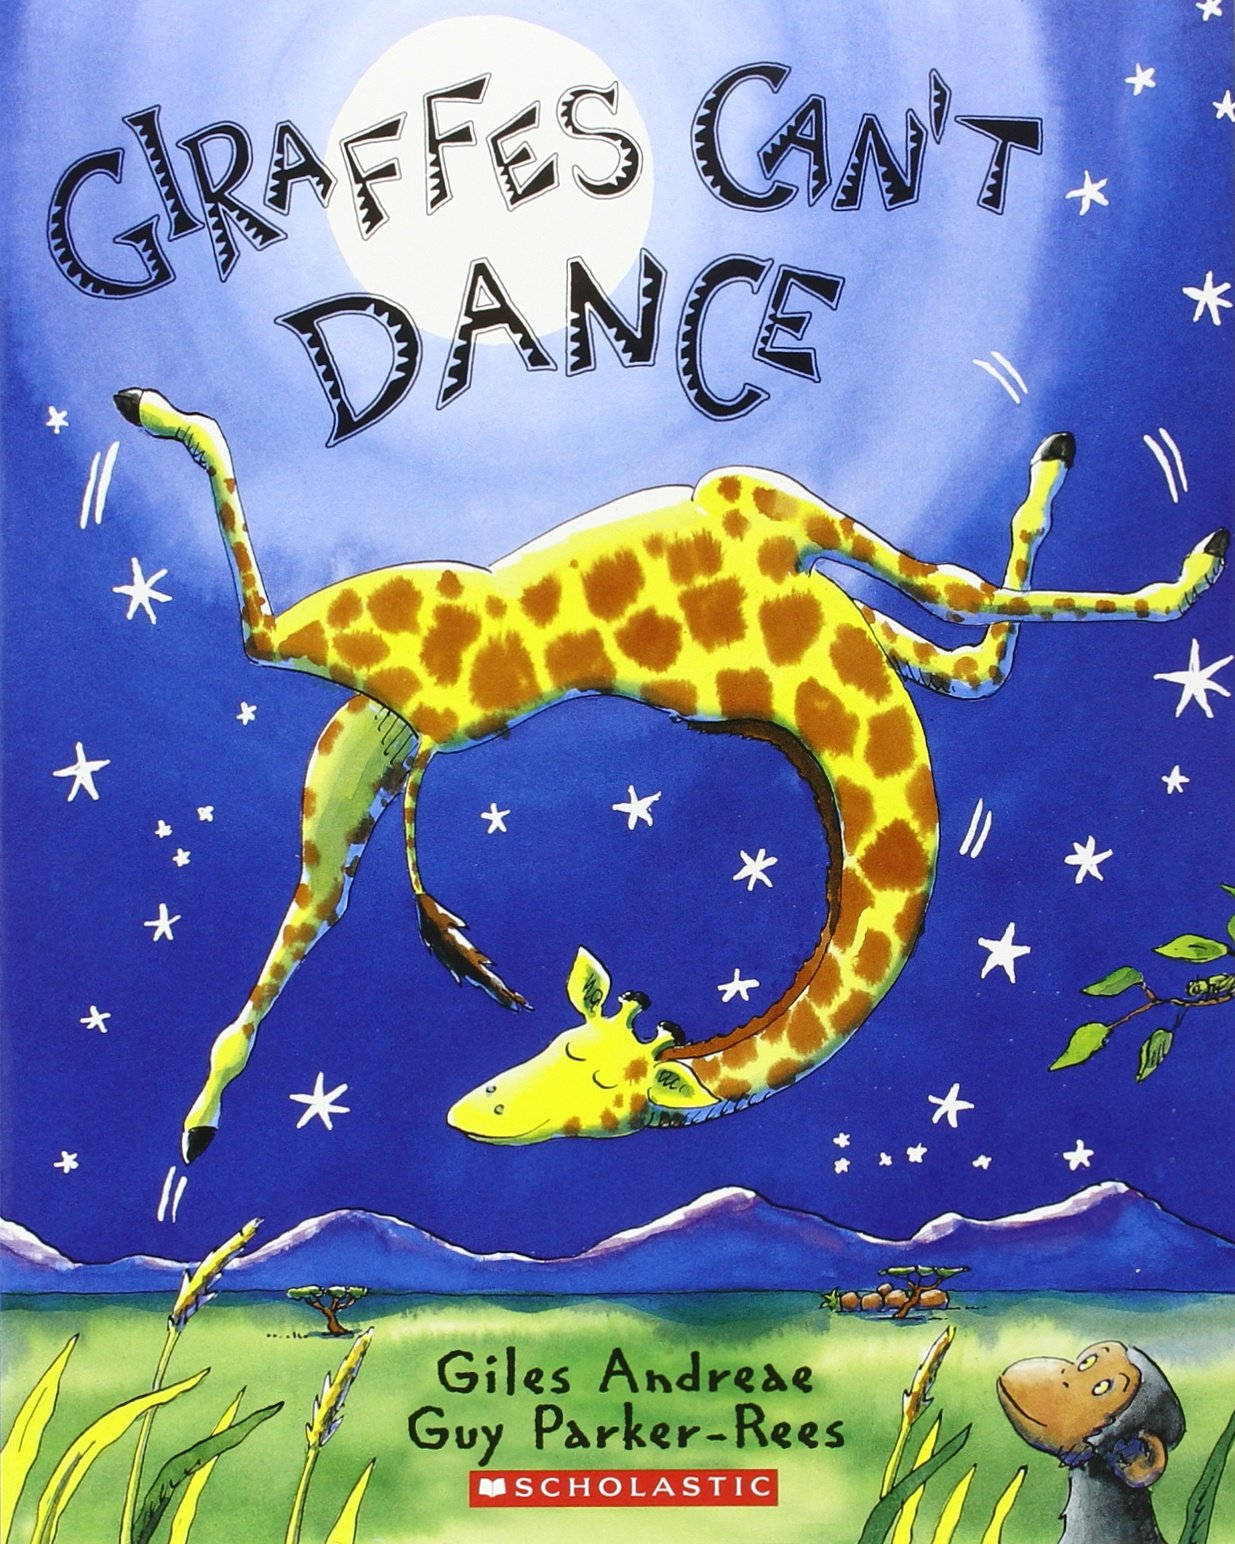 Giraffes Can't Dance: Audiobook Read-Along (Paperback and CD): Giles  Andreae, Guy Parker-Rees, Billy Dee Williams: 8601234582717: Amazon.com:  Books